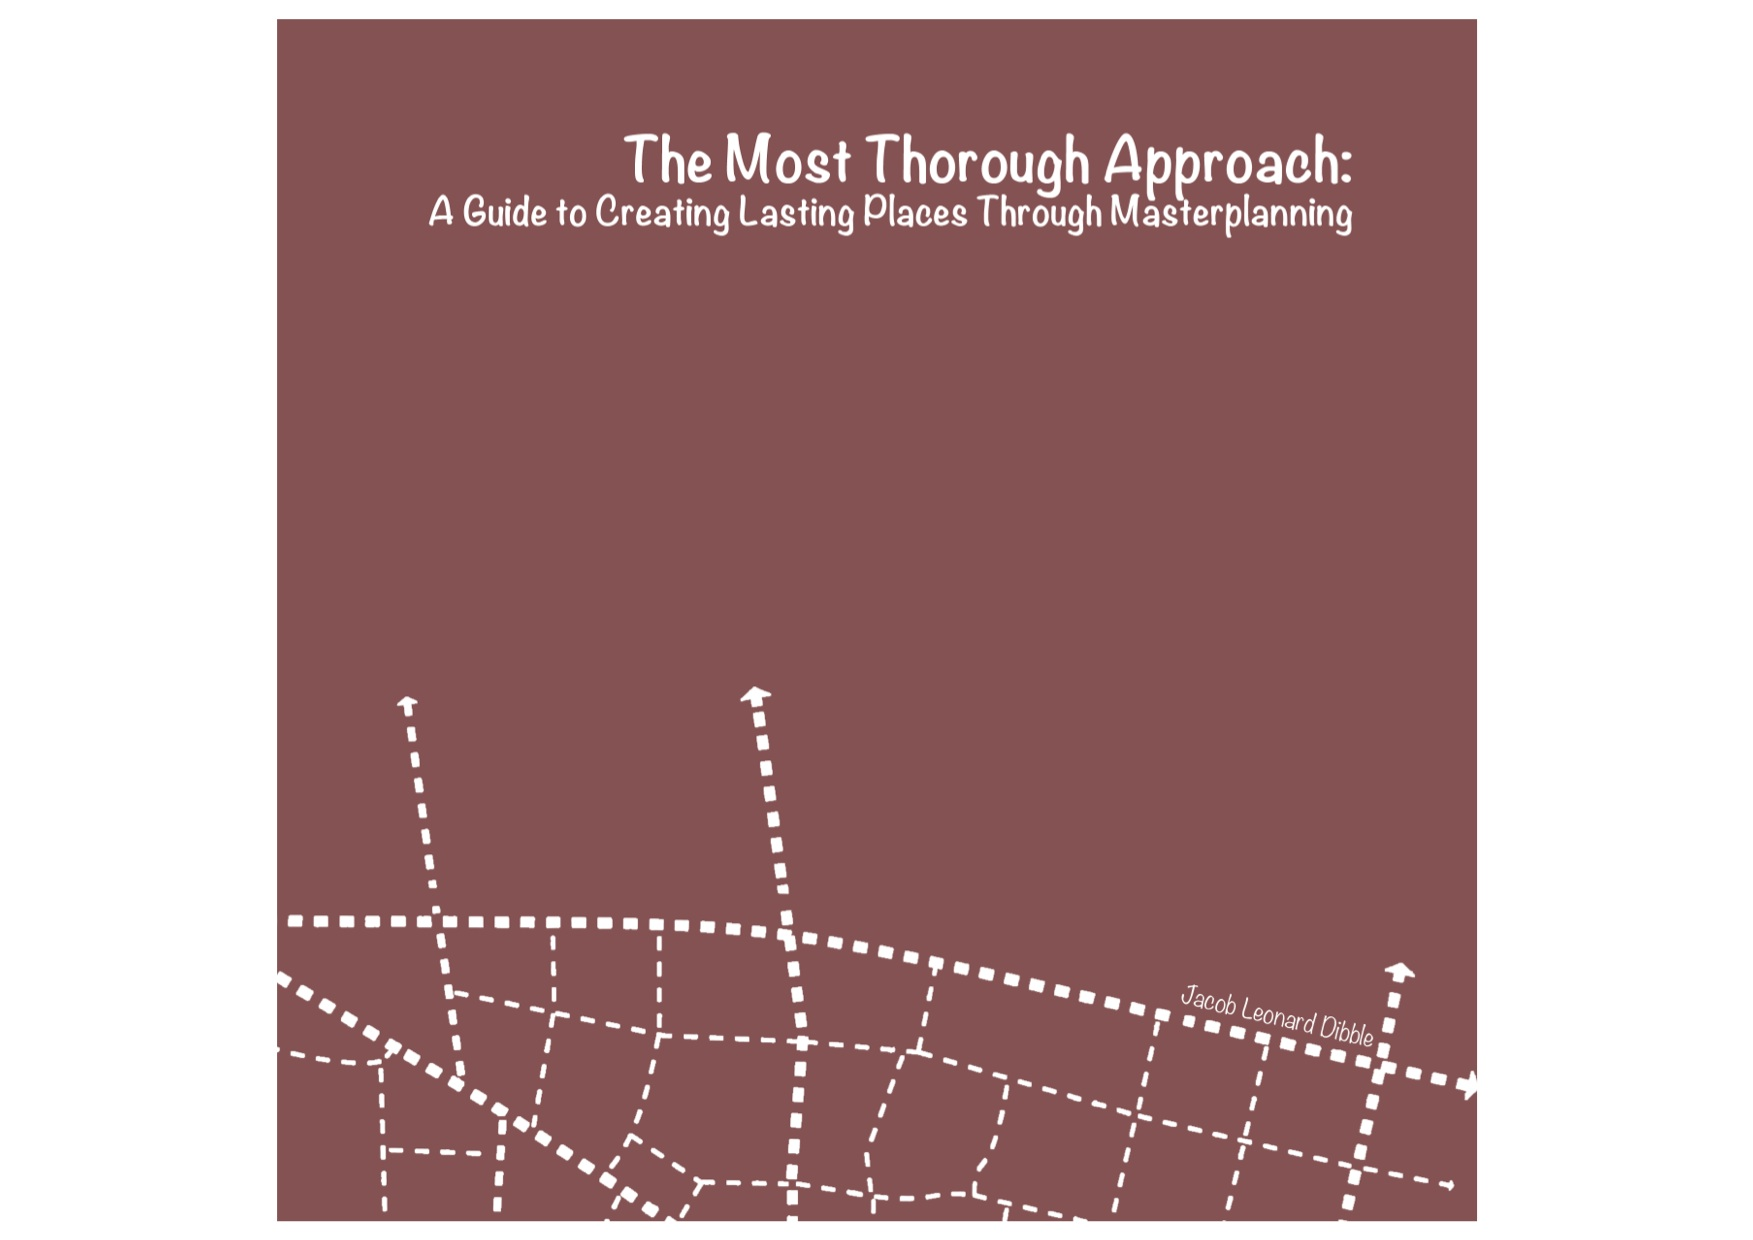 The Most Thorough Approach- A Guide to Masterplanning